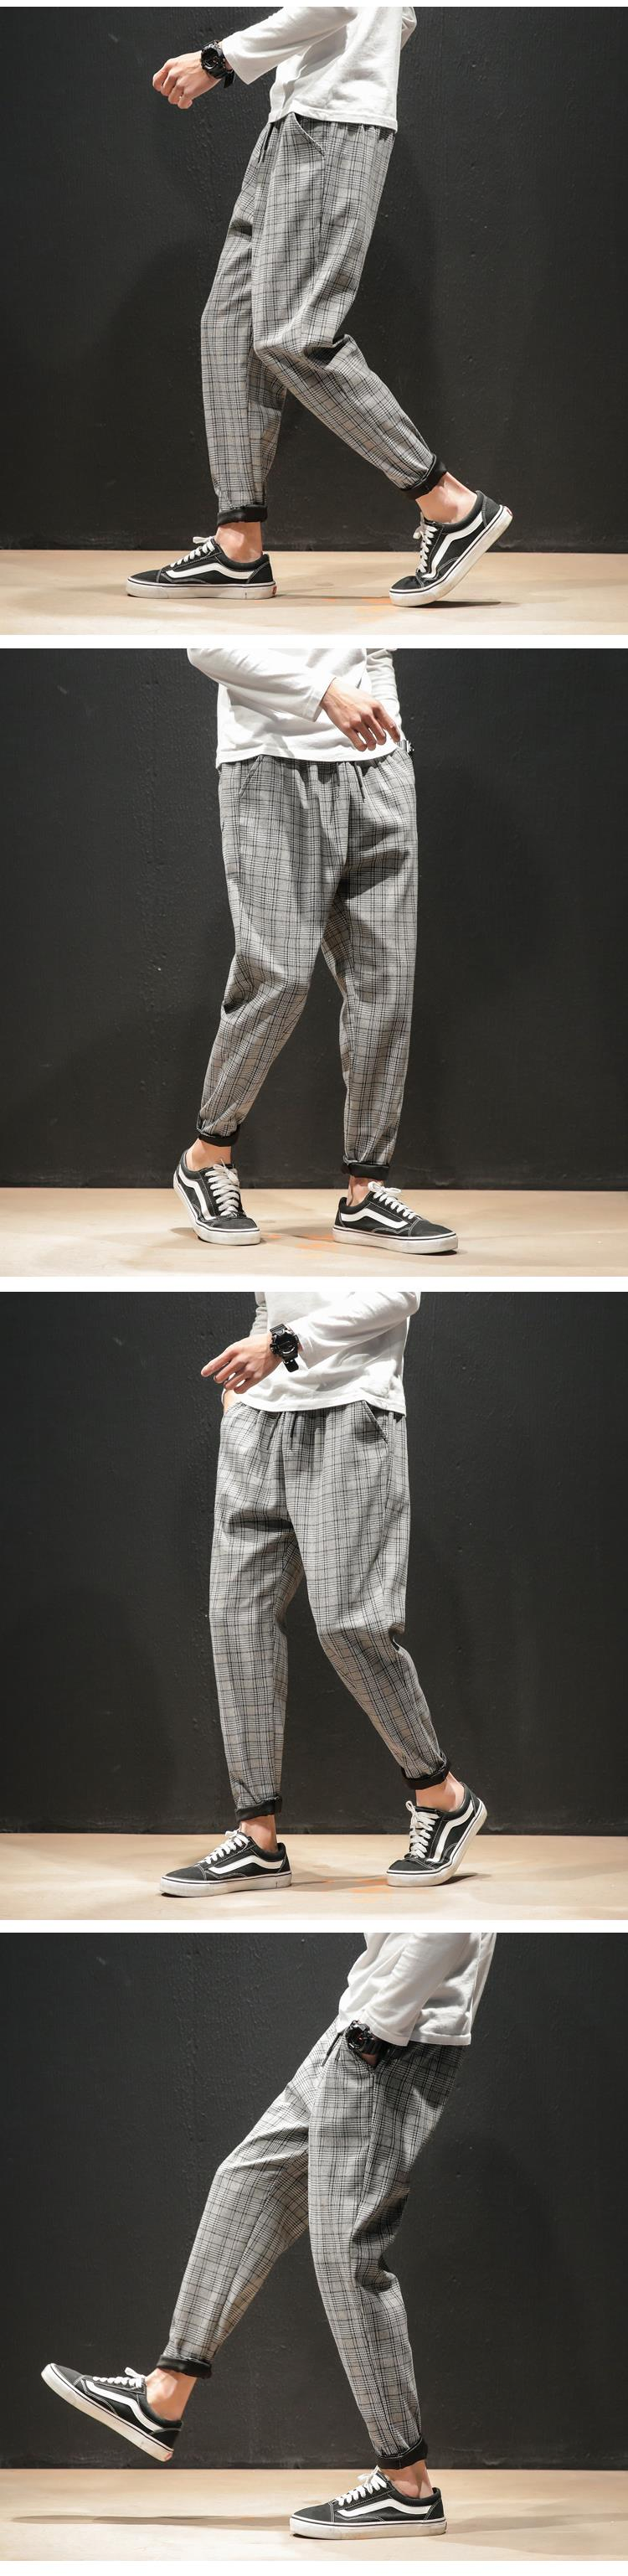 Hfa63a8e740c3444da9b14def2824907fk Dropshipping Japanese Streerwear Men Plaid Pants 2019 Autumn Fashion Slim Man Casual Trousers Korean Male Harem Pants